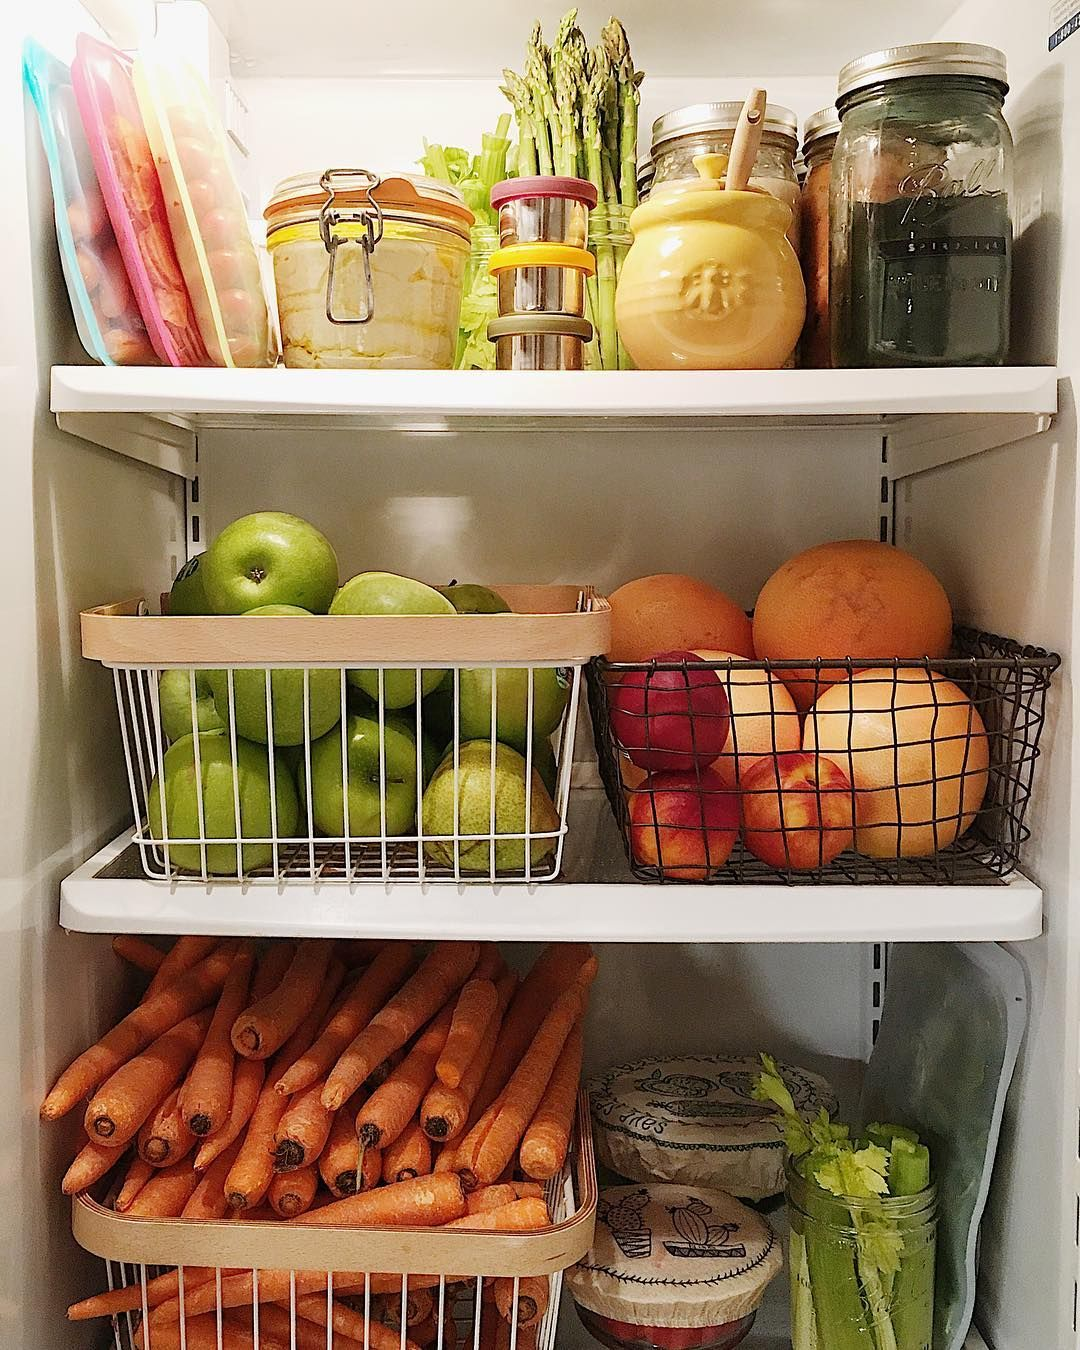 Brilliant Fridge Envy With Stasherbag Ziplock Alternatives By Simply Home Interior And Landscaping Pimpapssignezvosmurscom